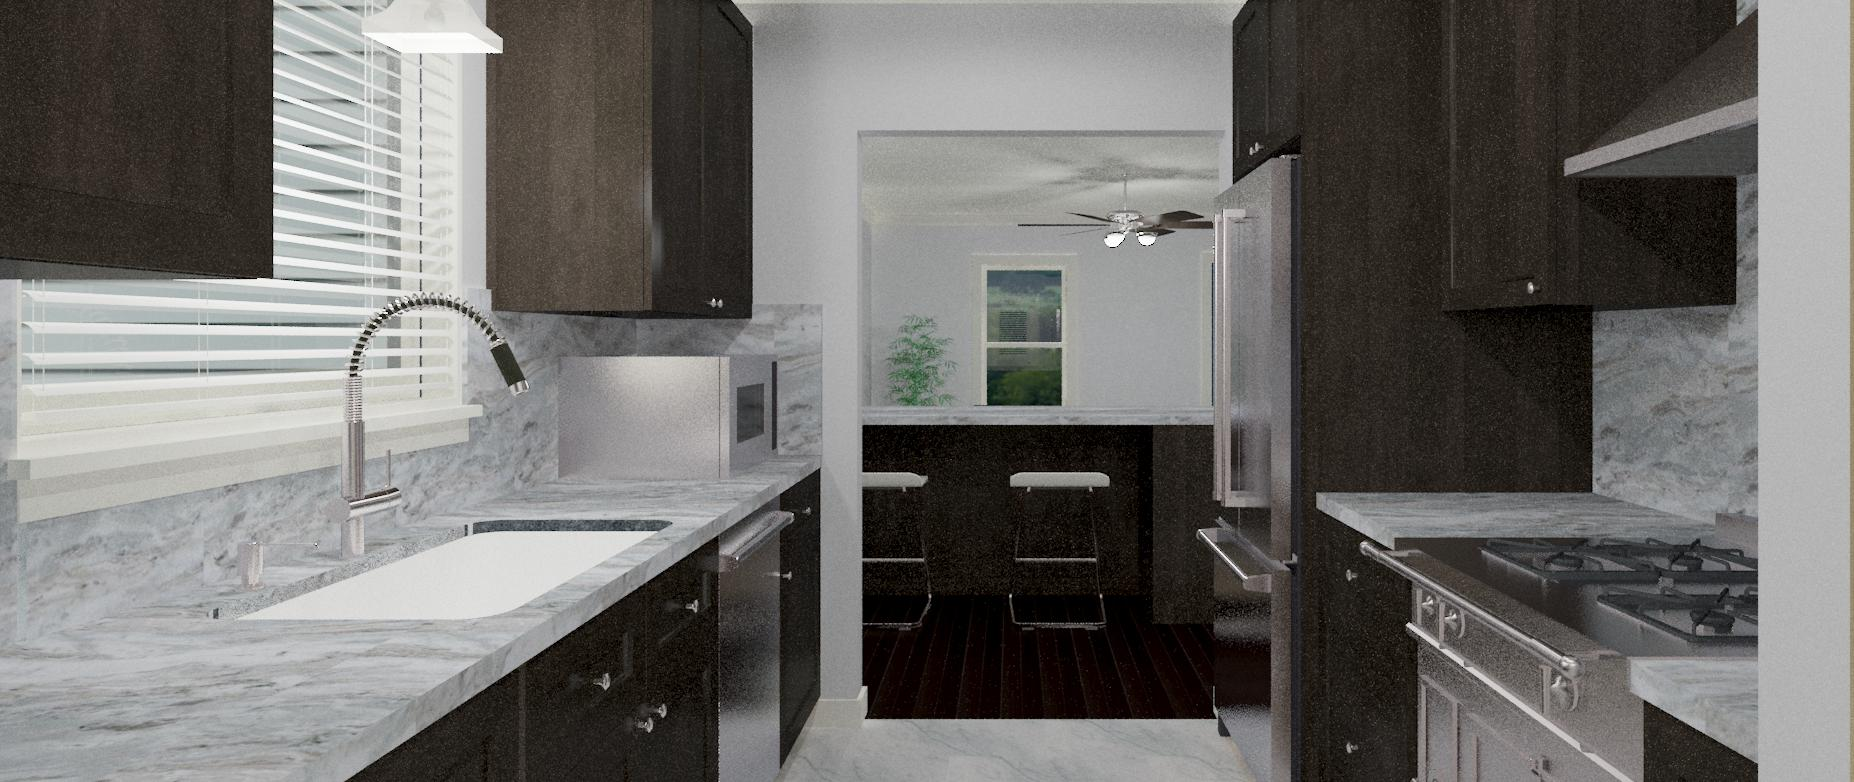 Kitchen Update for Our Investment Property